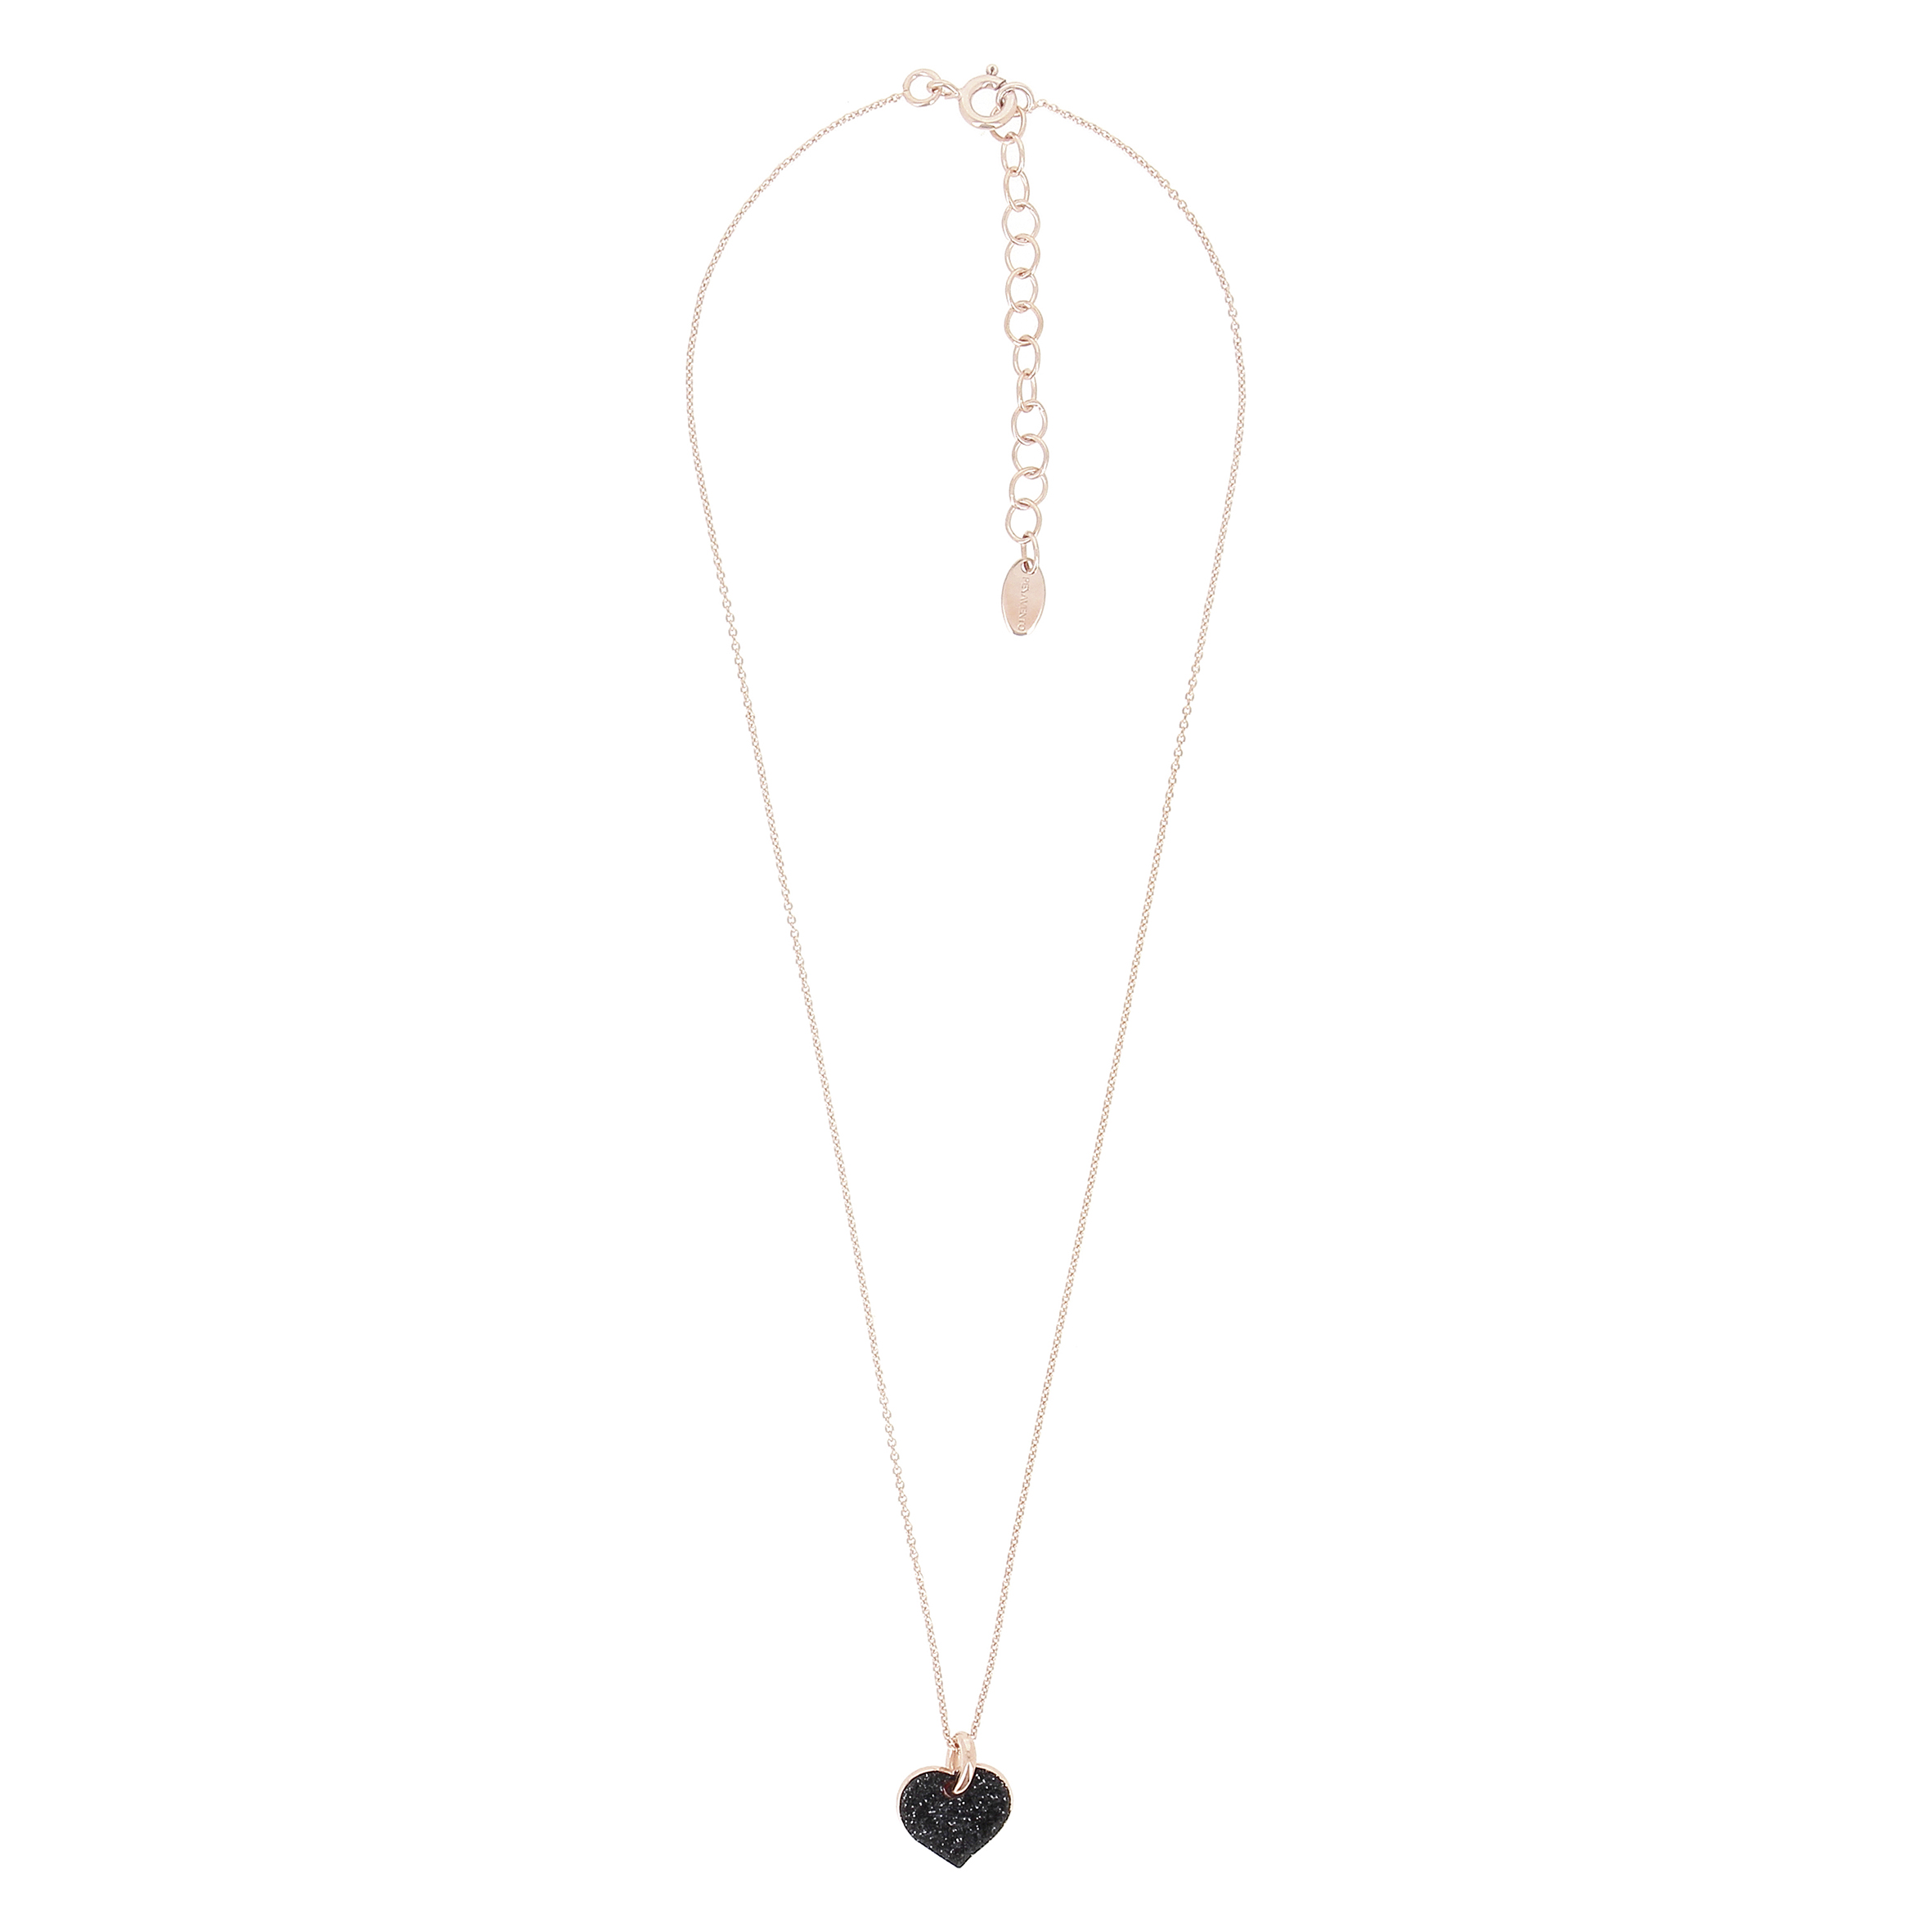 PESAVENTO Necklace with black heart pendant